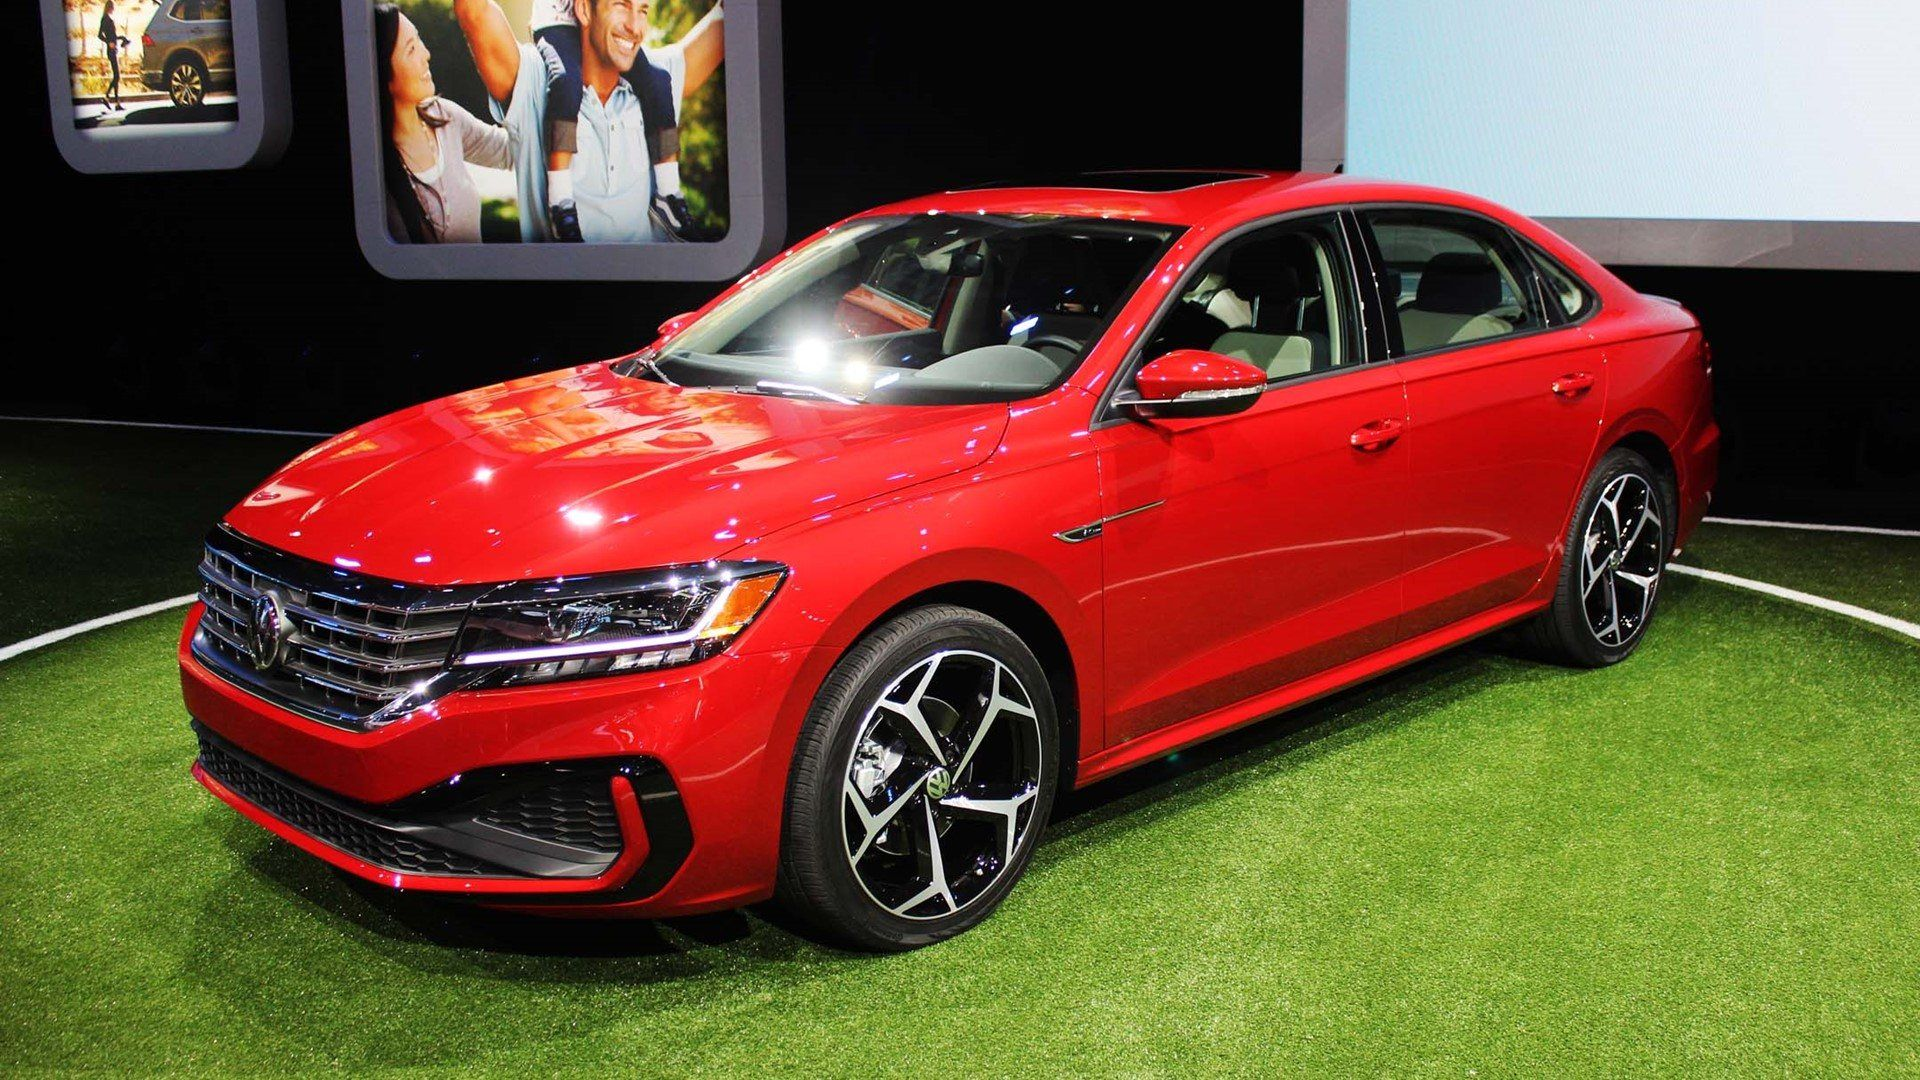 2020 Volkswagen Cc Redesign and Review in 2020 ...